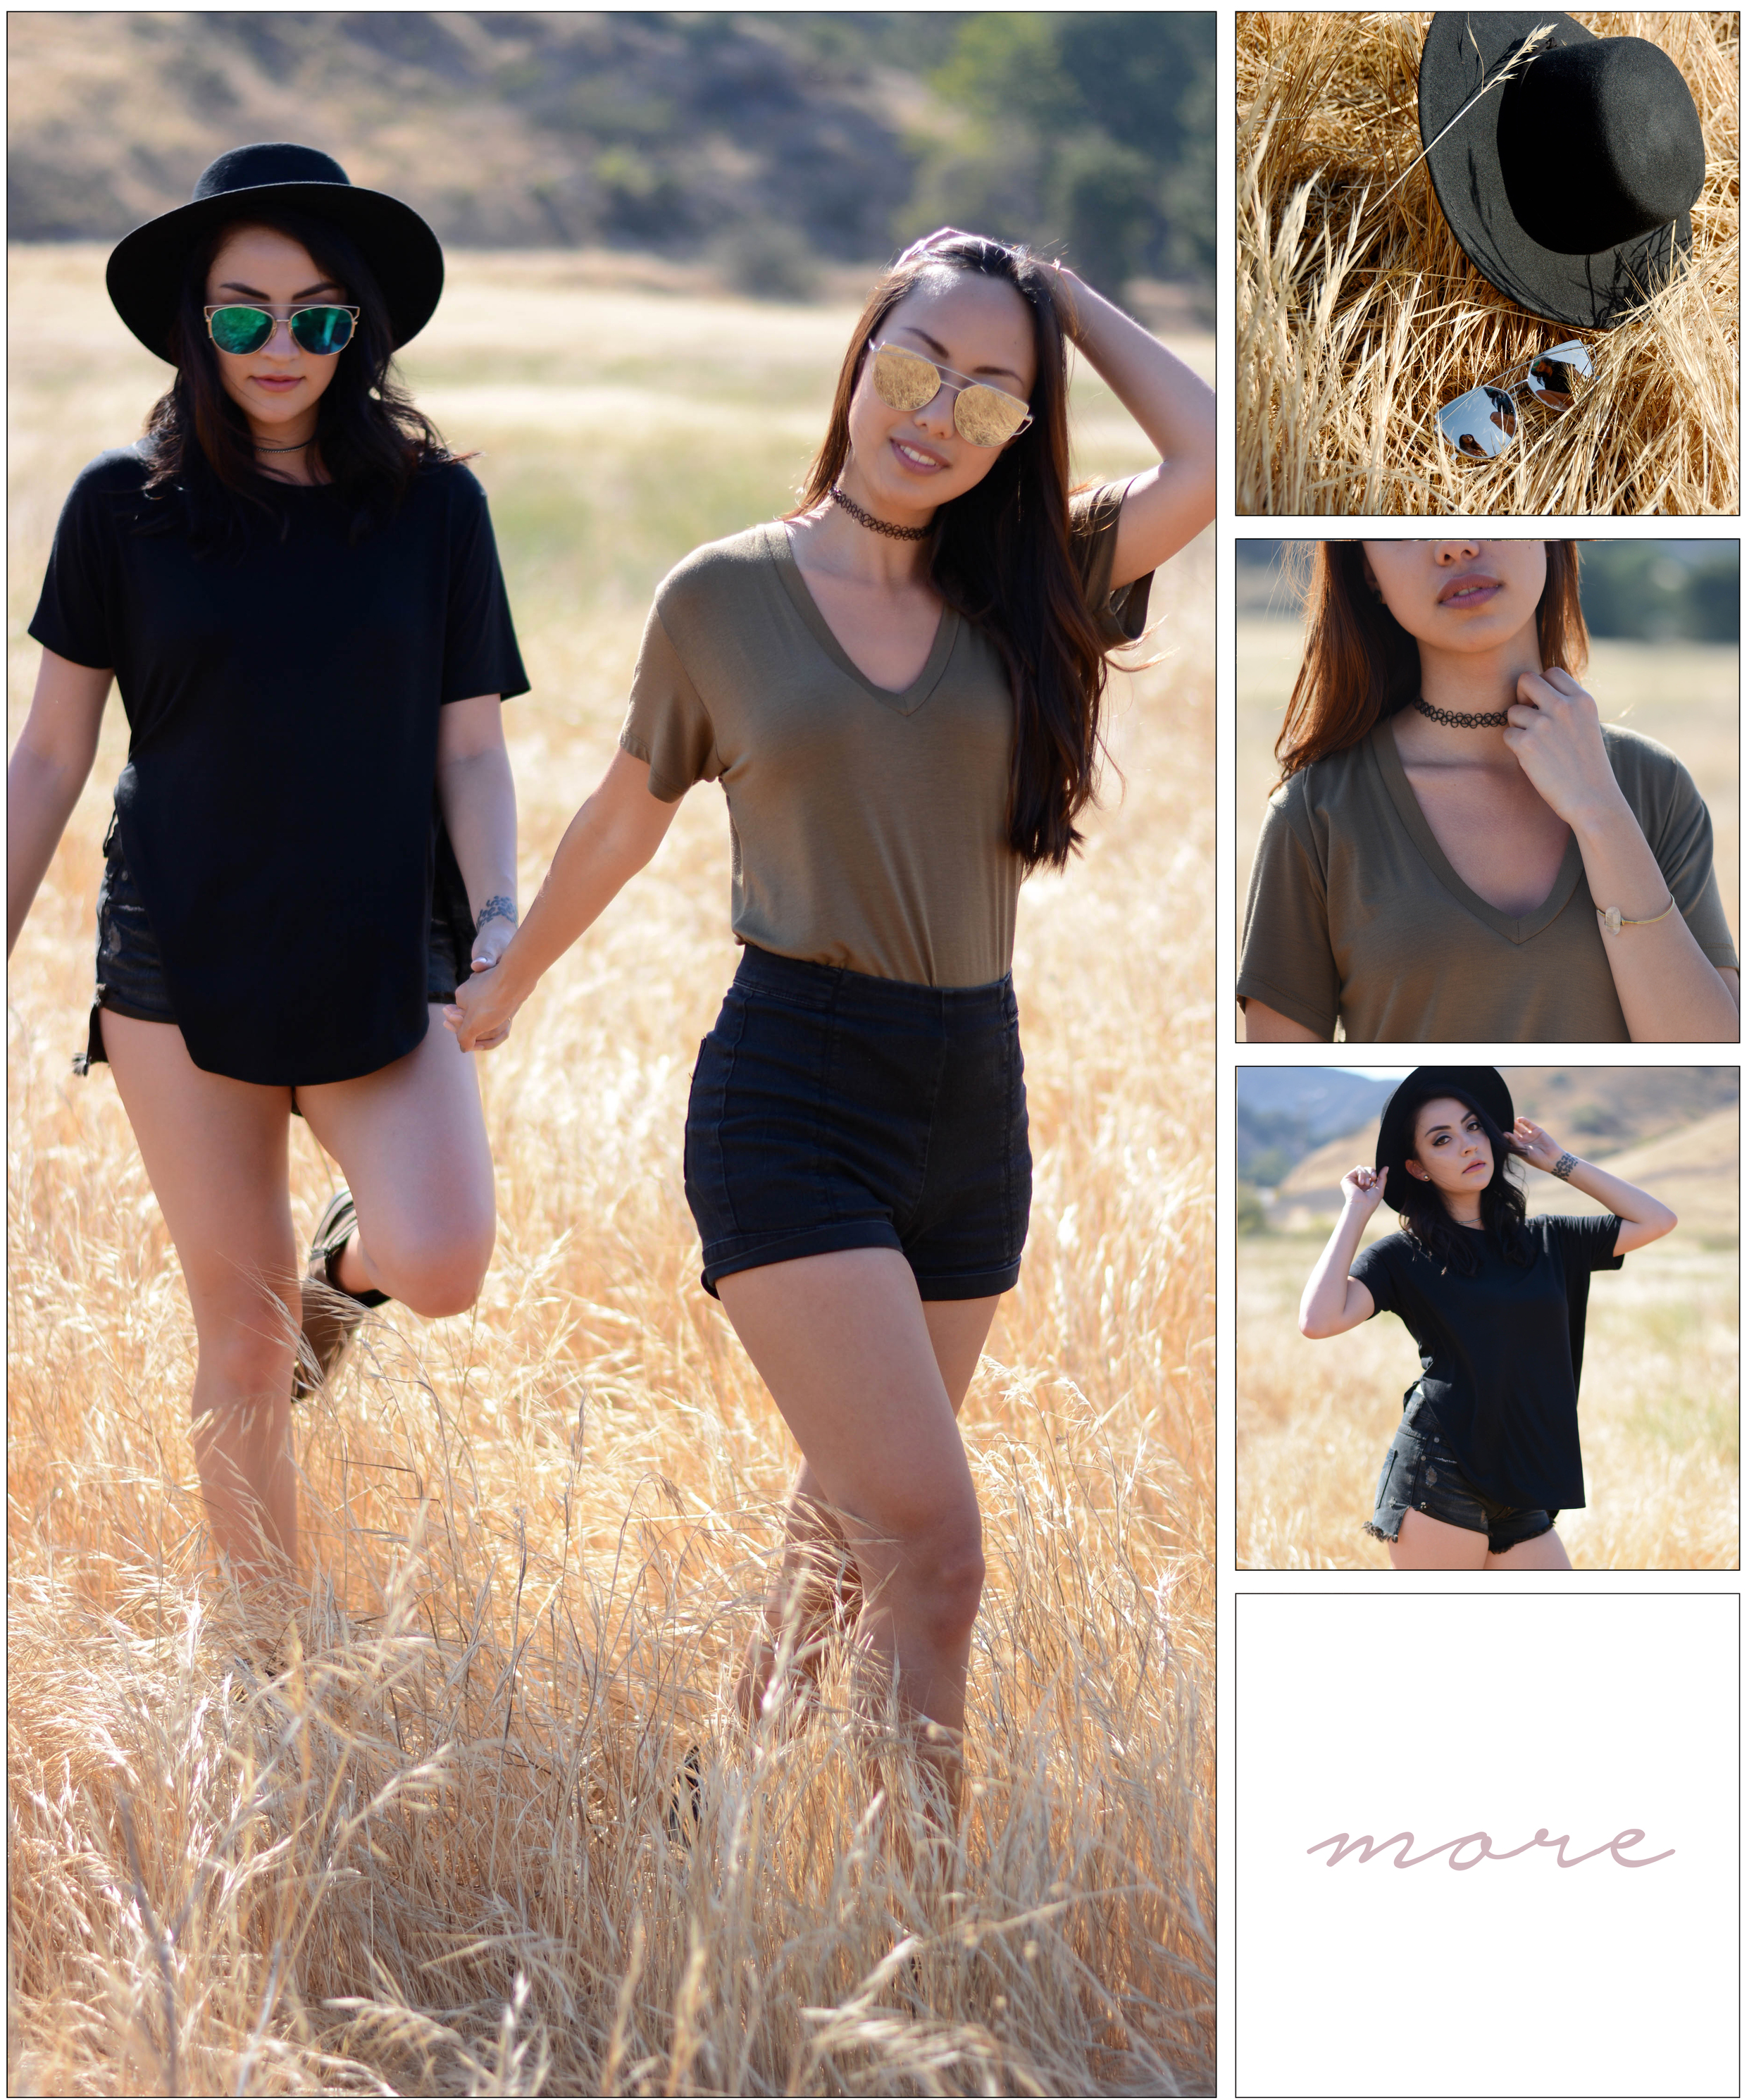 "This day was definitely one of our more memorable shoots. It was very hot, and we had nowhere to stay cool under the scorching sun. We always talk about #doingitforthepic and scouting the perfect location for our outfits so we figured we would head out to the canyons and frolick in the ""pretty"" grass. 🌾🌾🌾"